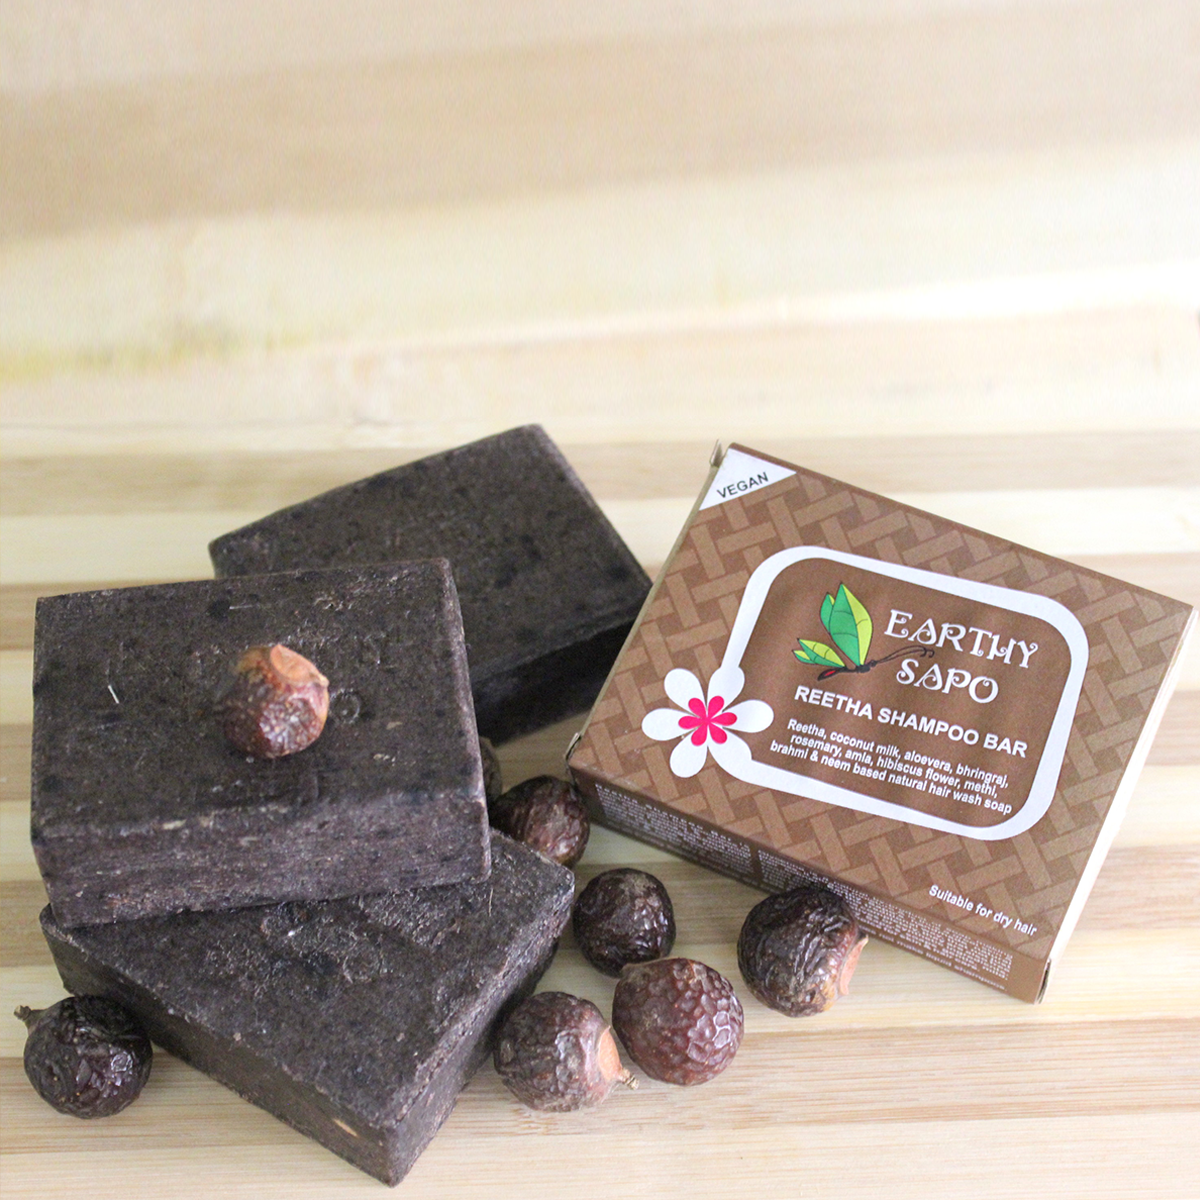 Earthy Sapo Reetha Shampoo Bar- Handmade & Suitable For Dry Hair